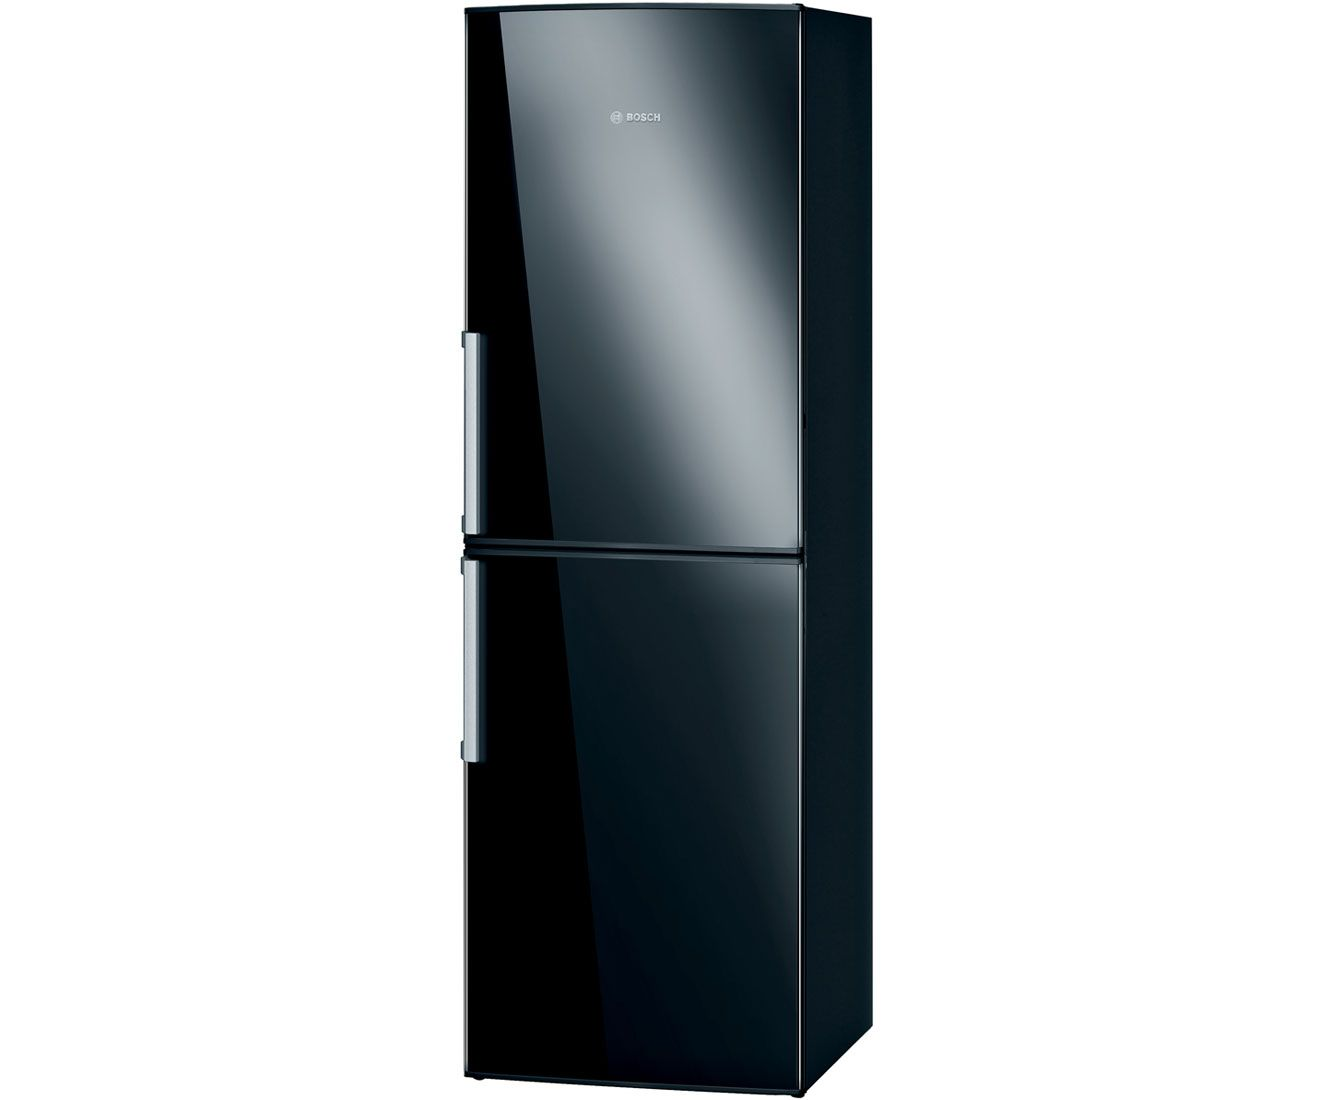 bosch exxcel kgn34vb20g freestanding fridge freezer black nld rh pinterest com